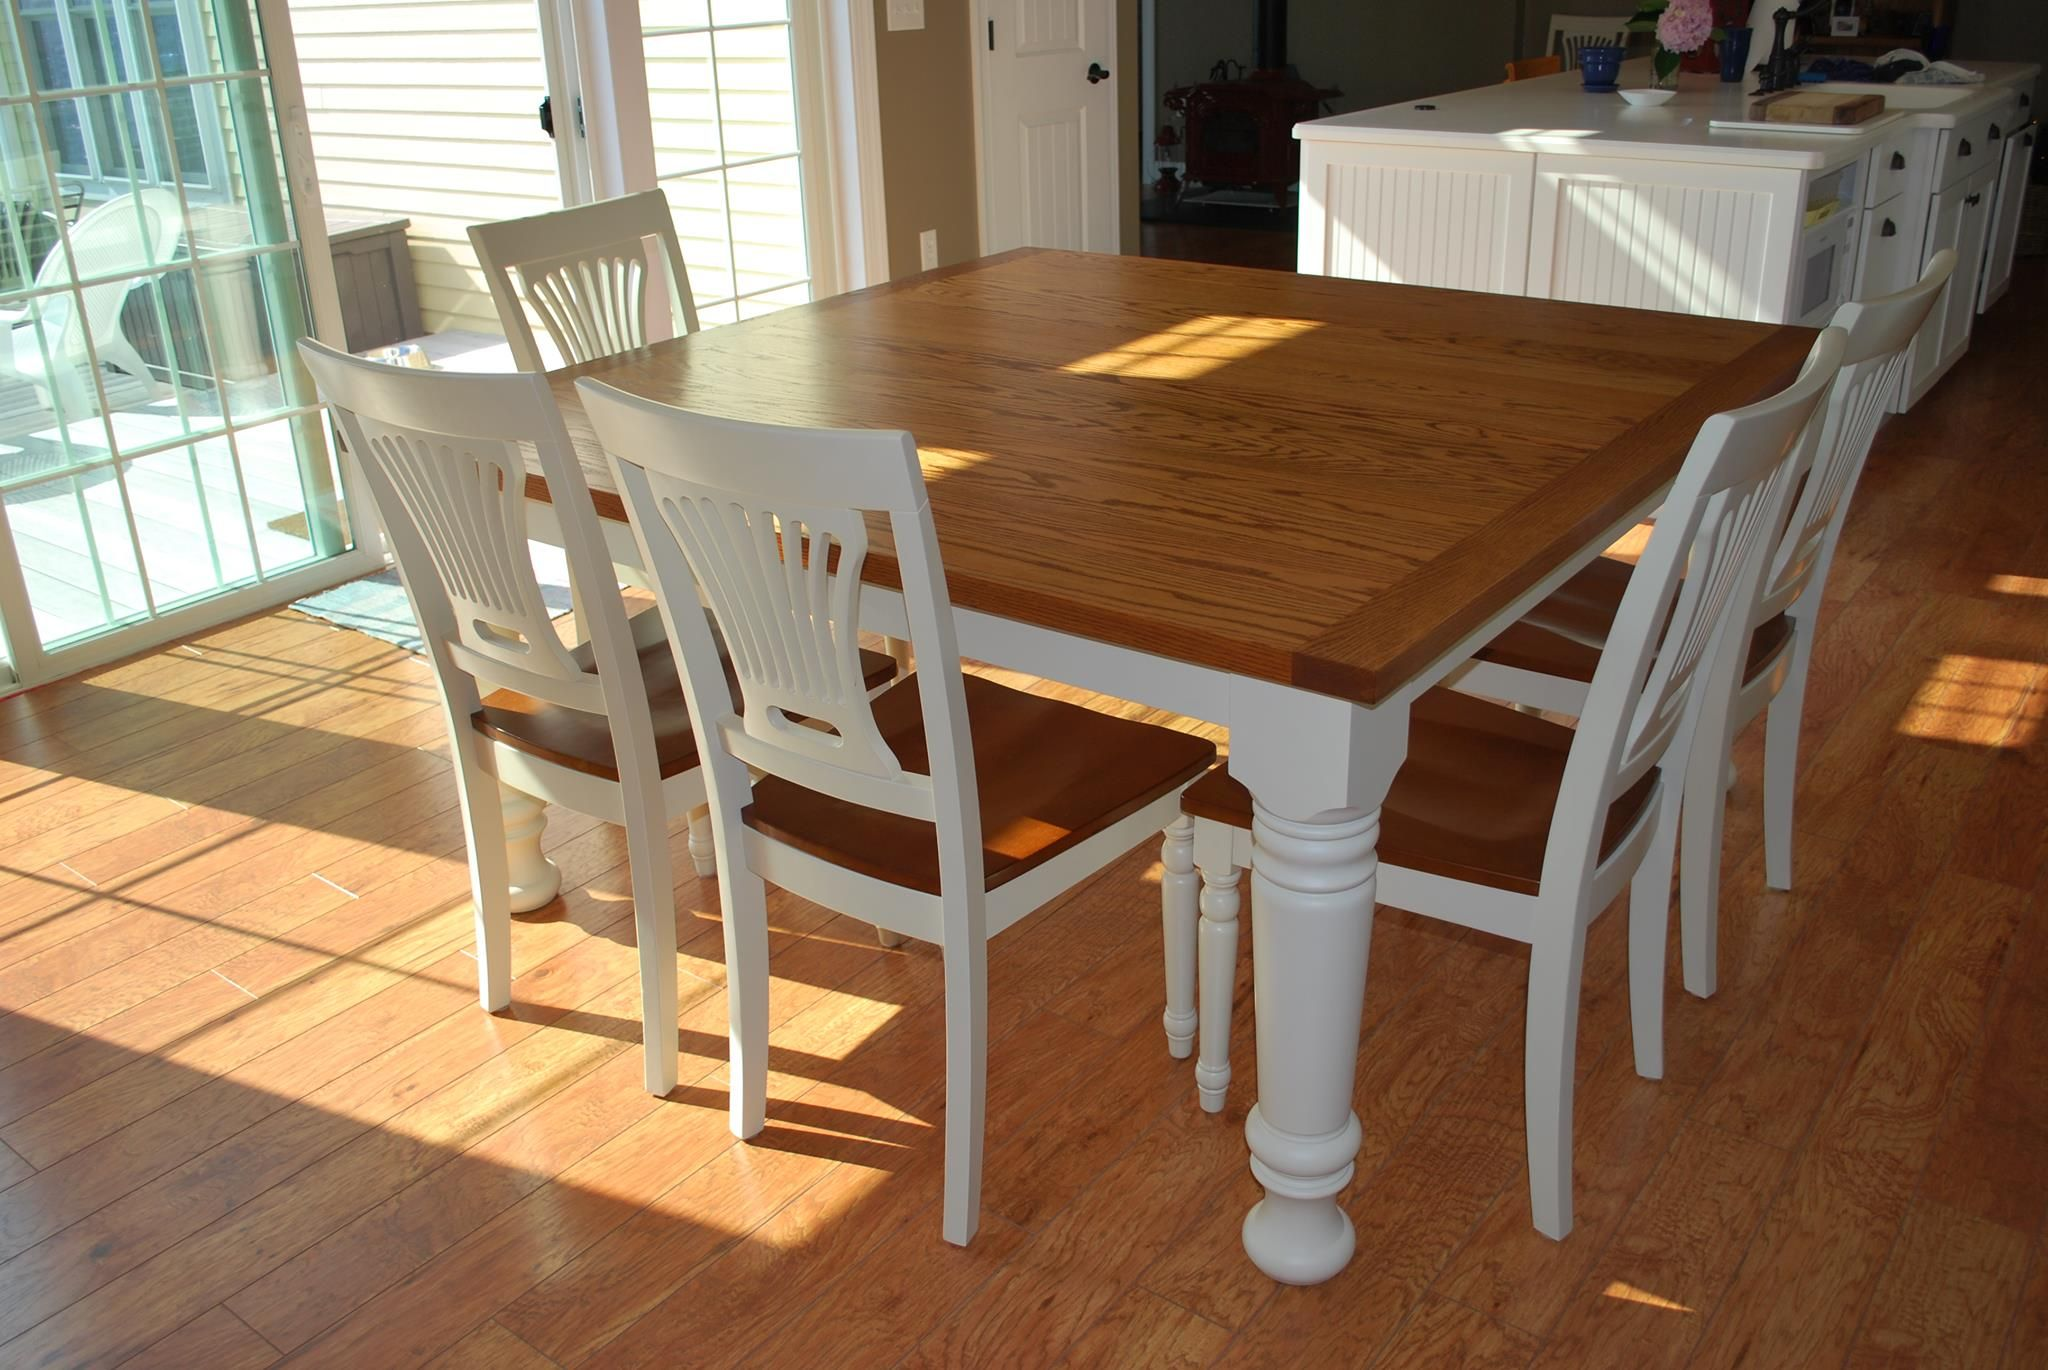 Furniture Easy Diy Modern Square Farmhouse Dining Table With Oak Top And Wooden Base Painted White Color For 8 Chairs Beside Gl Sliding Door Ideas